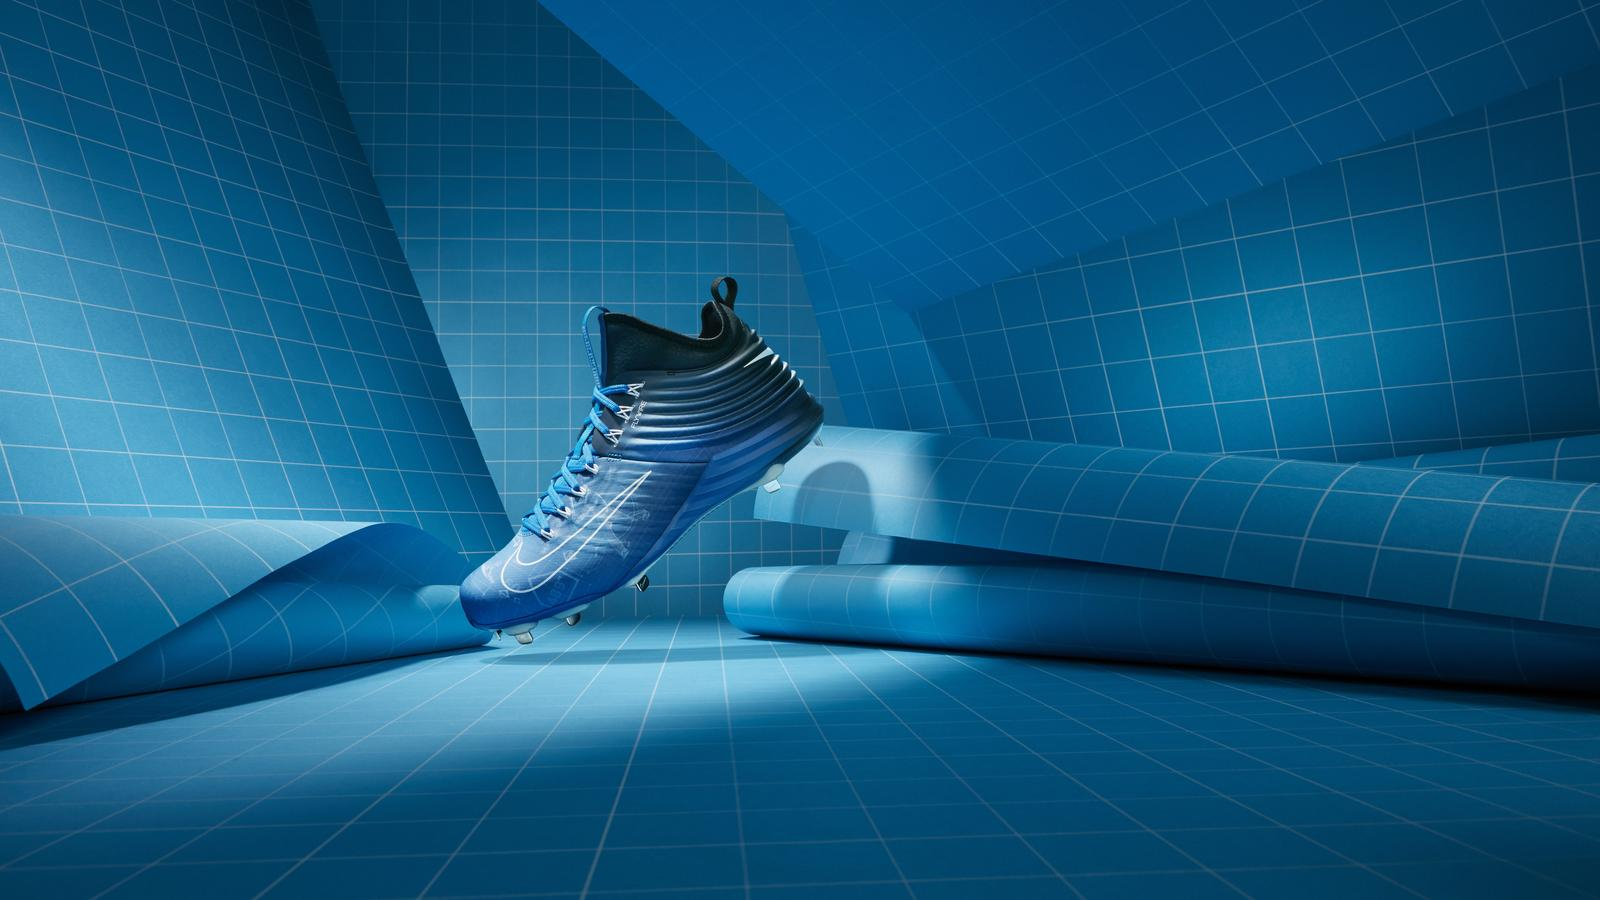 Nike_Lunar_Trout_2_Blueprint_BASE_0154_rgb copy